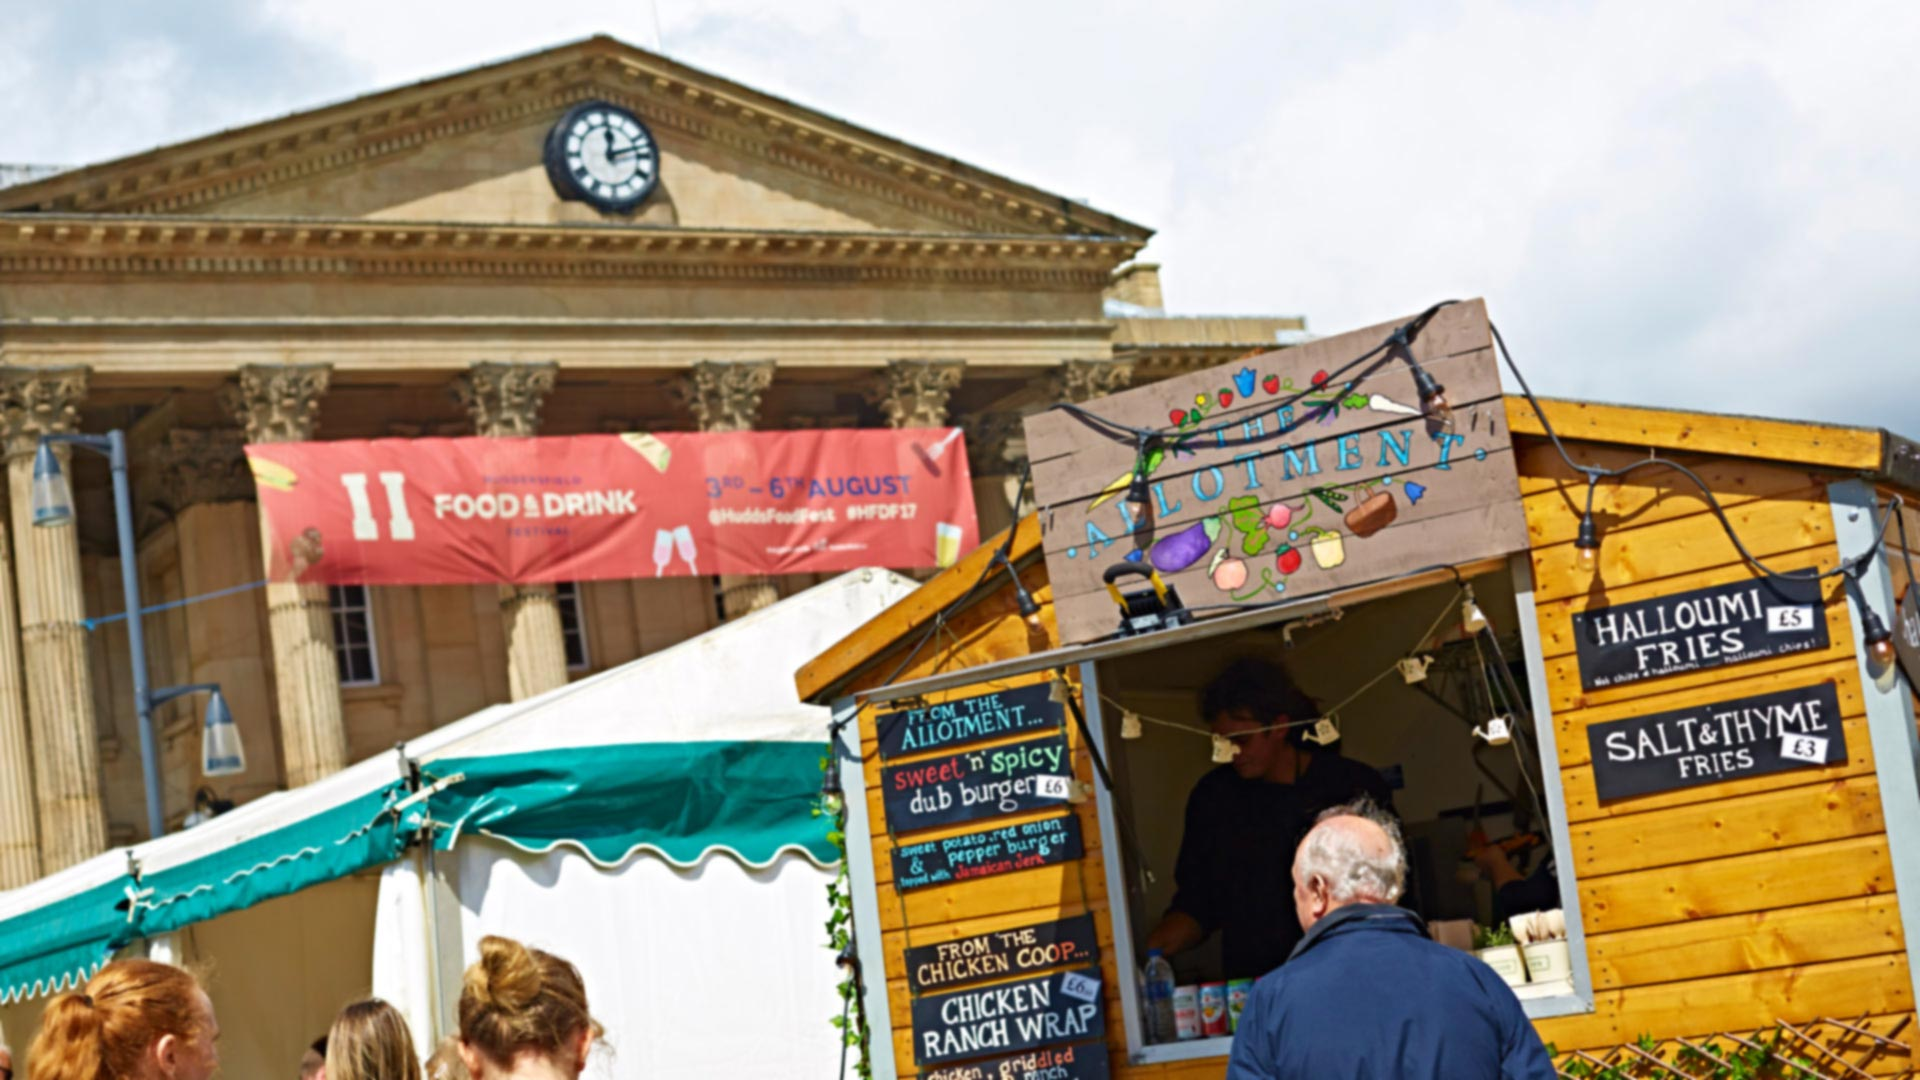 A stall at the Huddersfield Food and Drink Festival